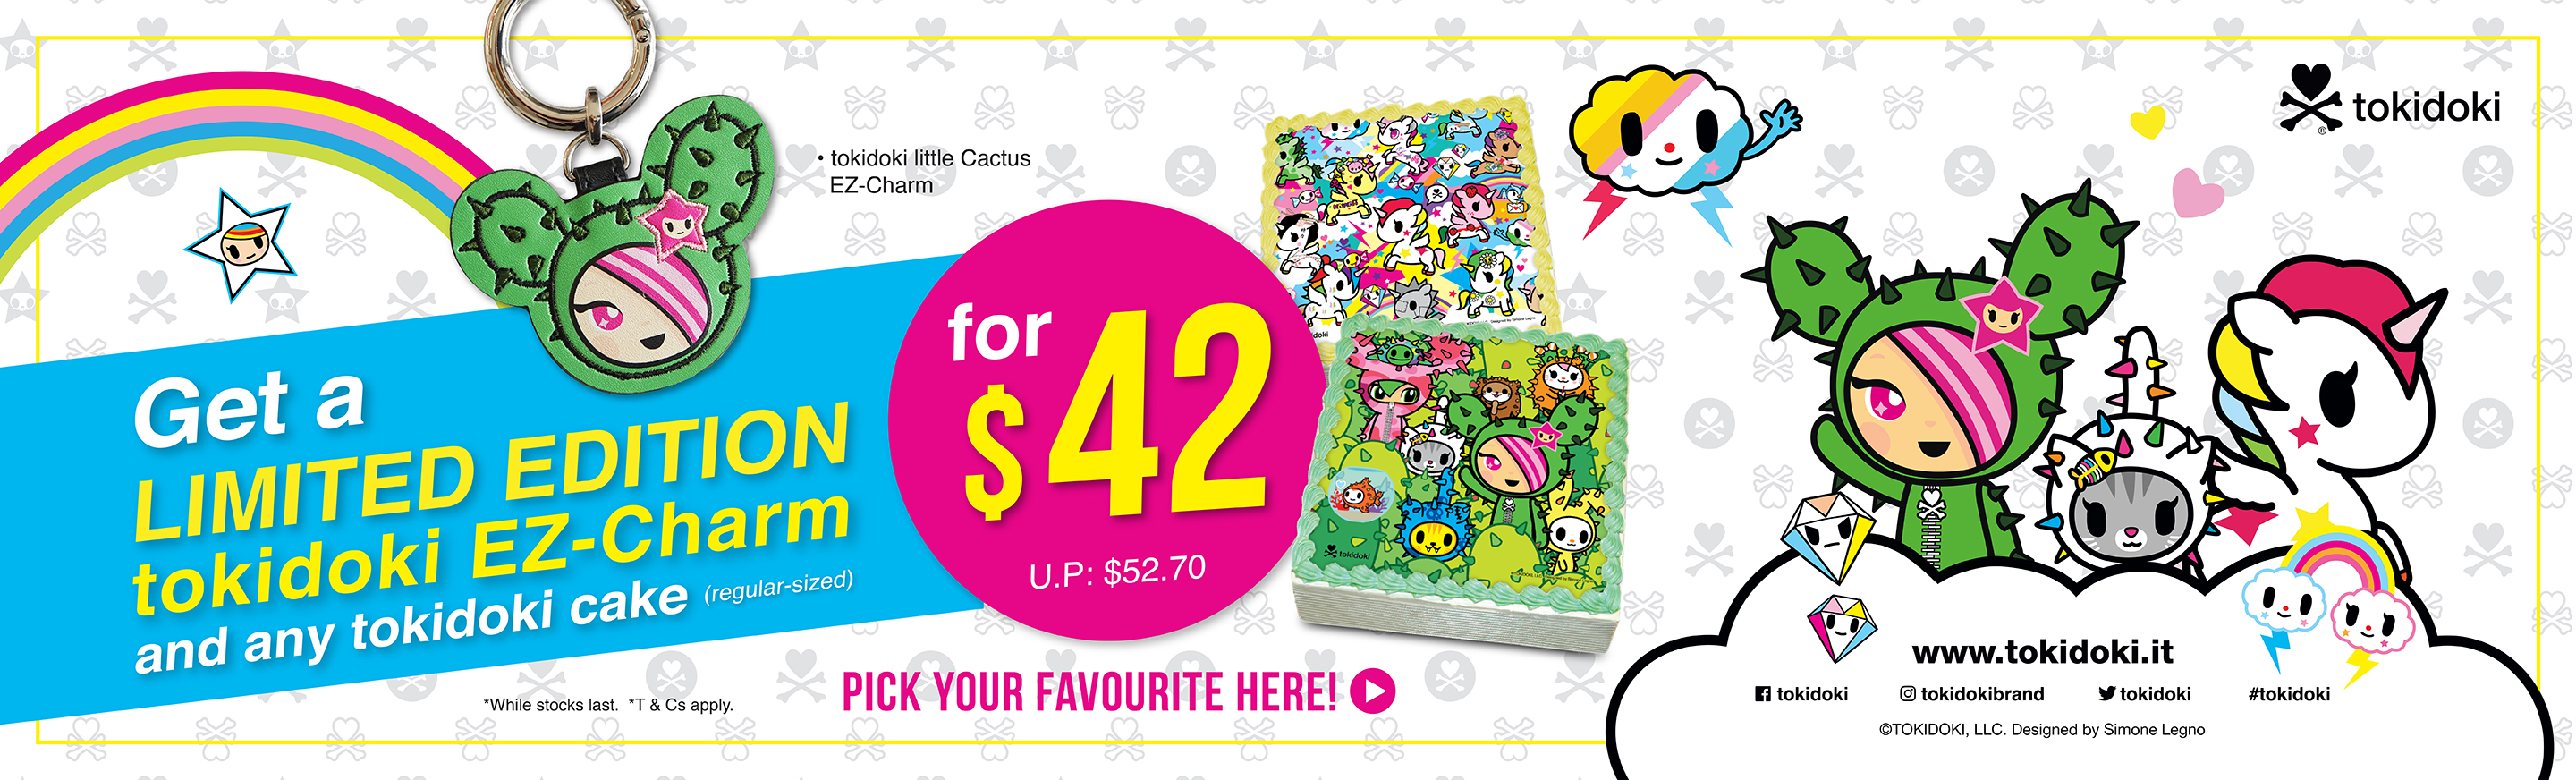 Limited Edition tokidoki EZ-Charm